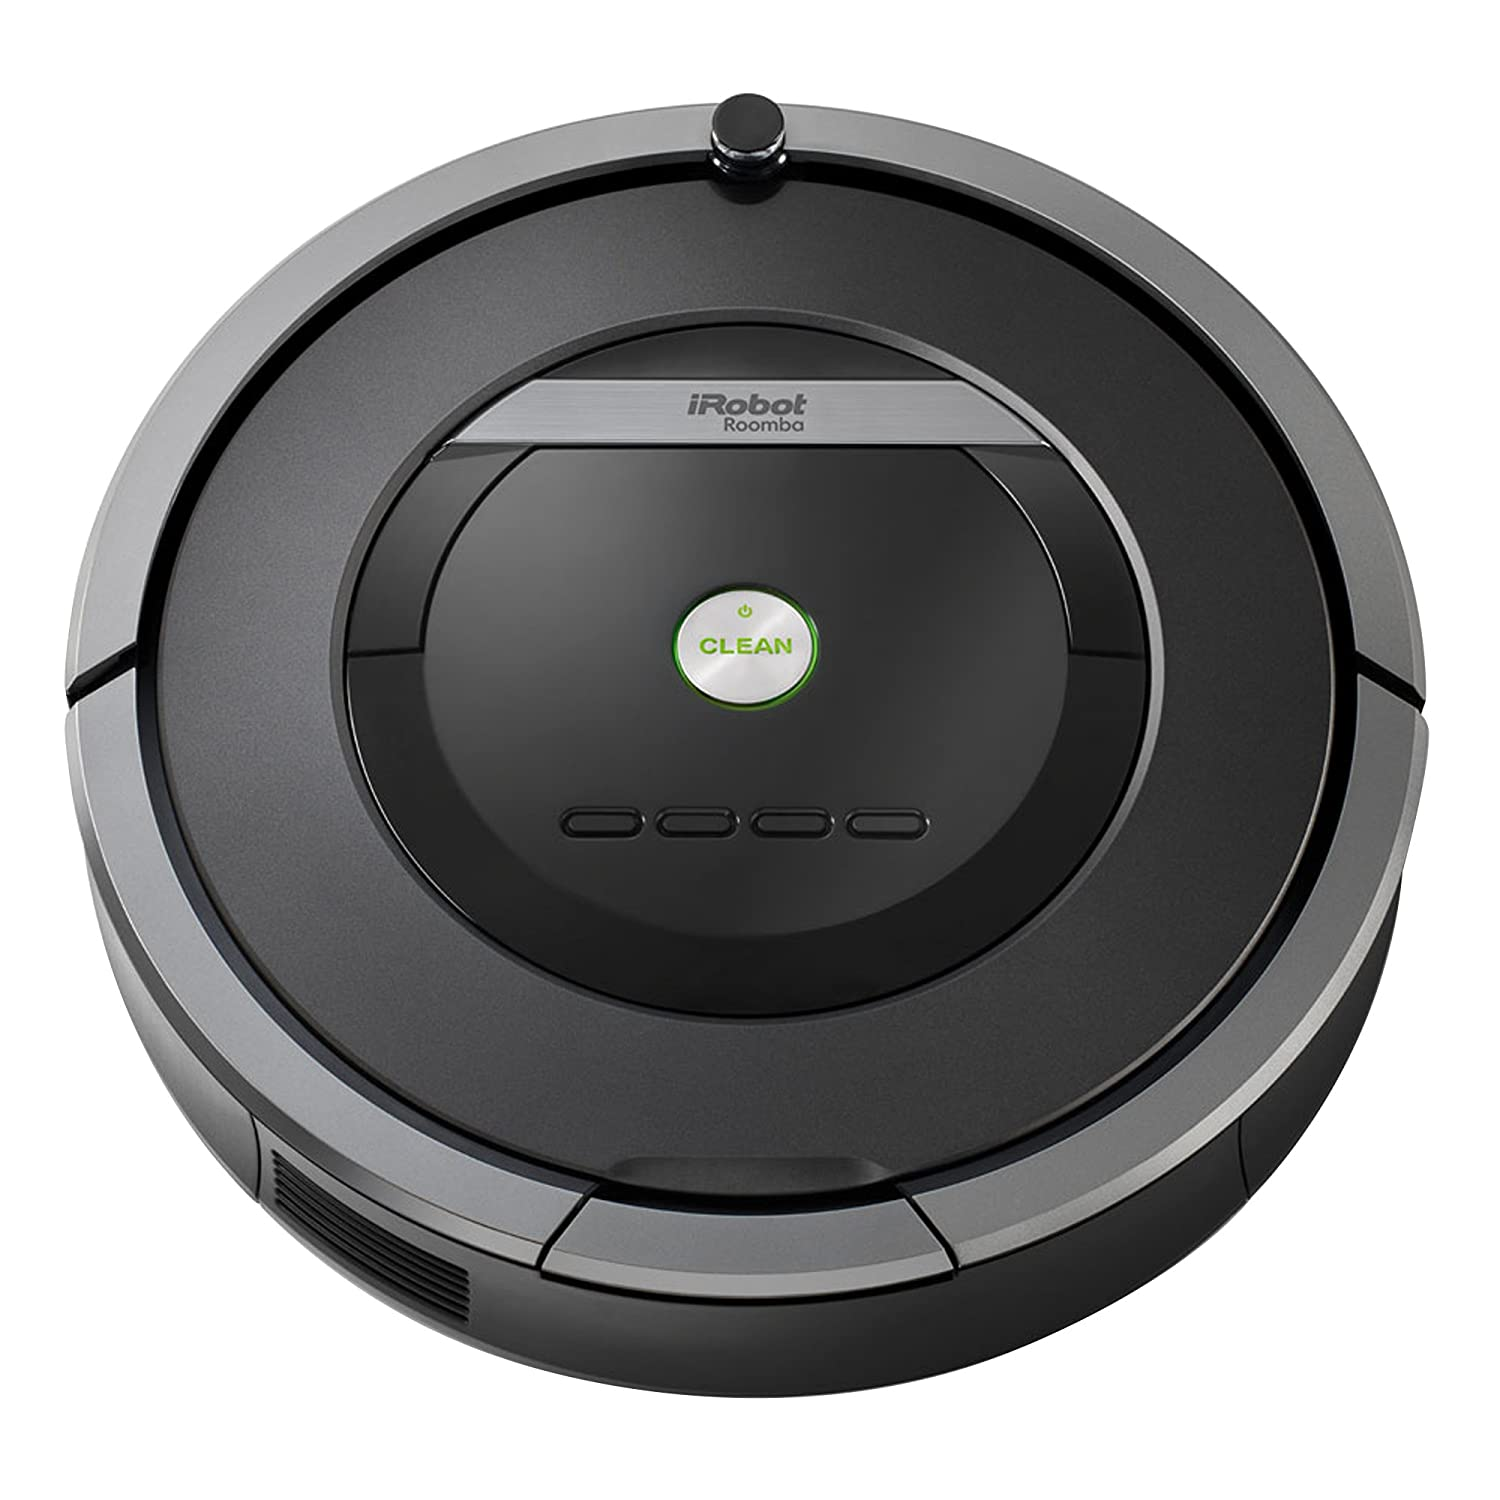 Amazon.com: iRobot Roomba 870 Robotic Vacuum Cleaner: Home & Kitchen